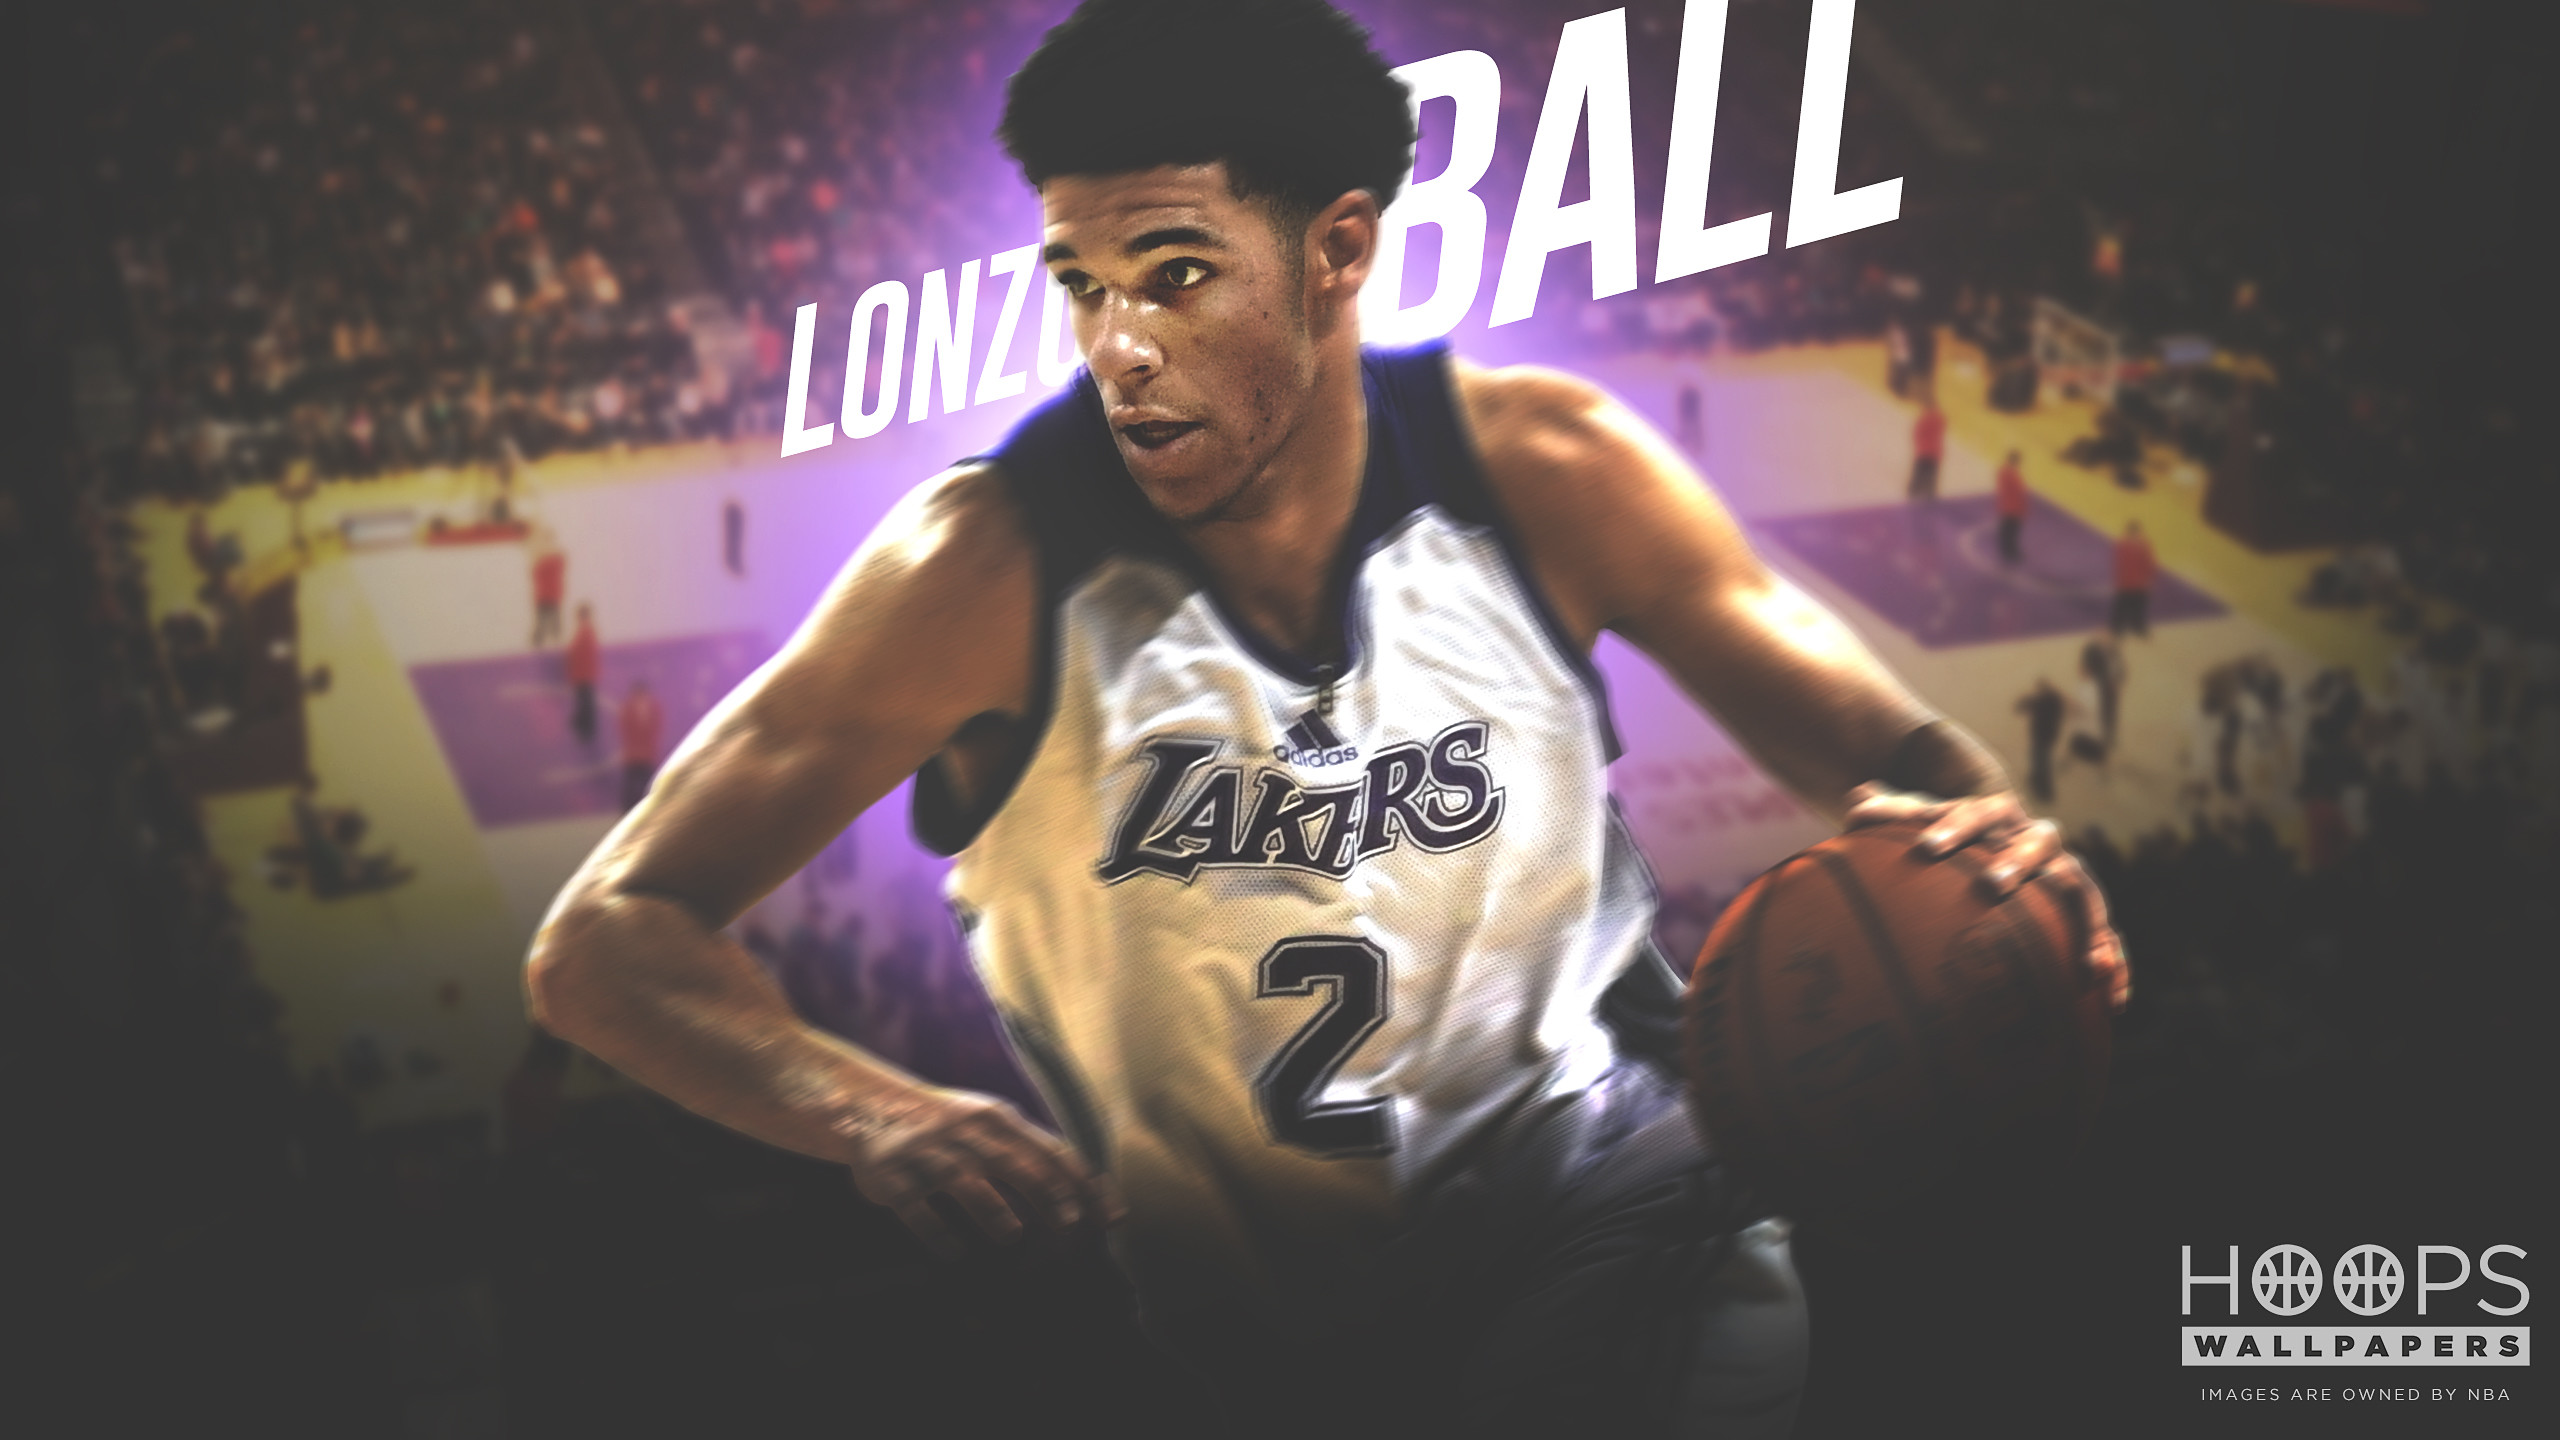 More Dynamic Wallpapers Iphone X Lonzo Ball Wallpapers 70 Images